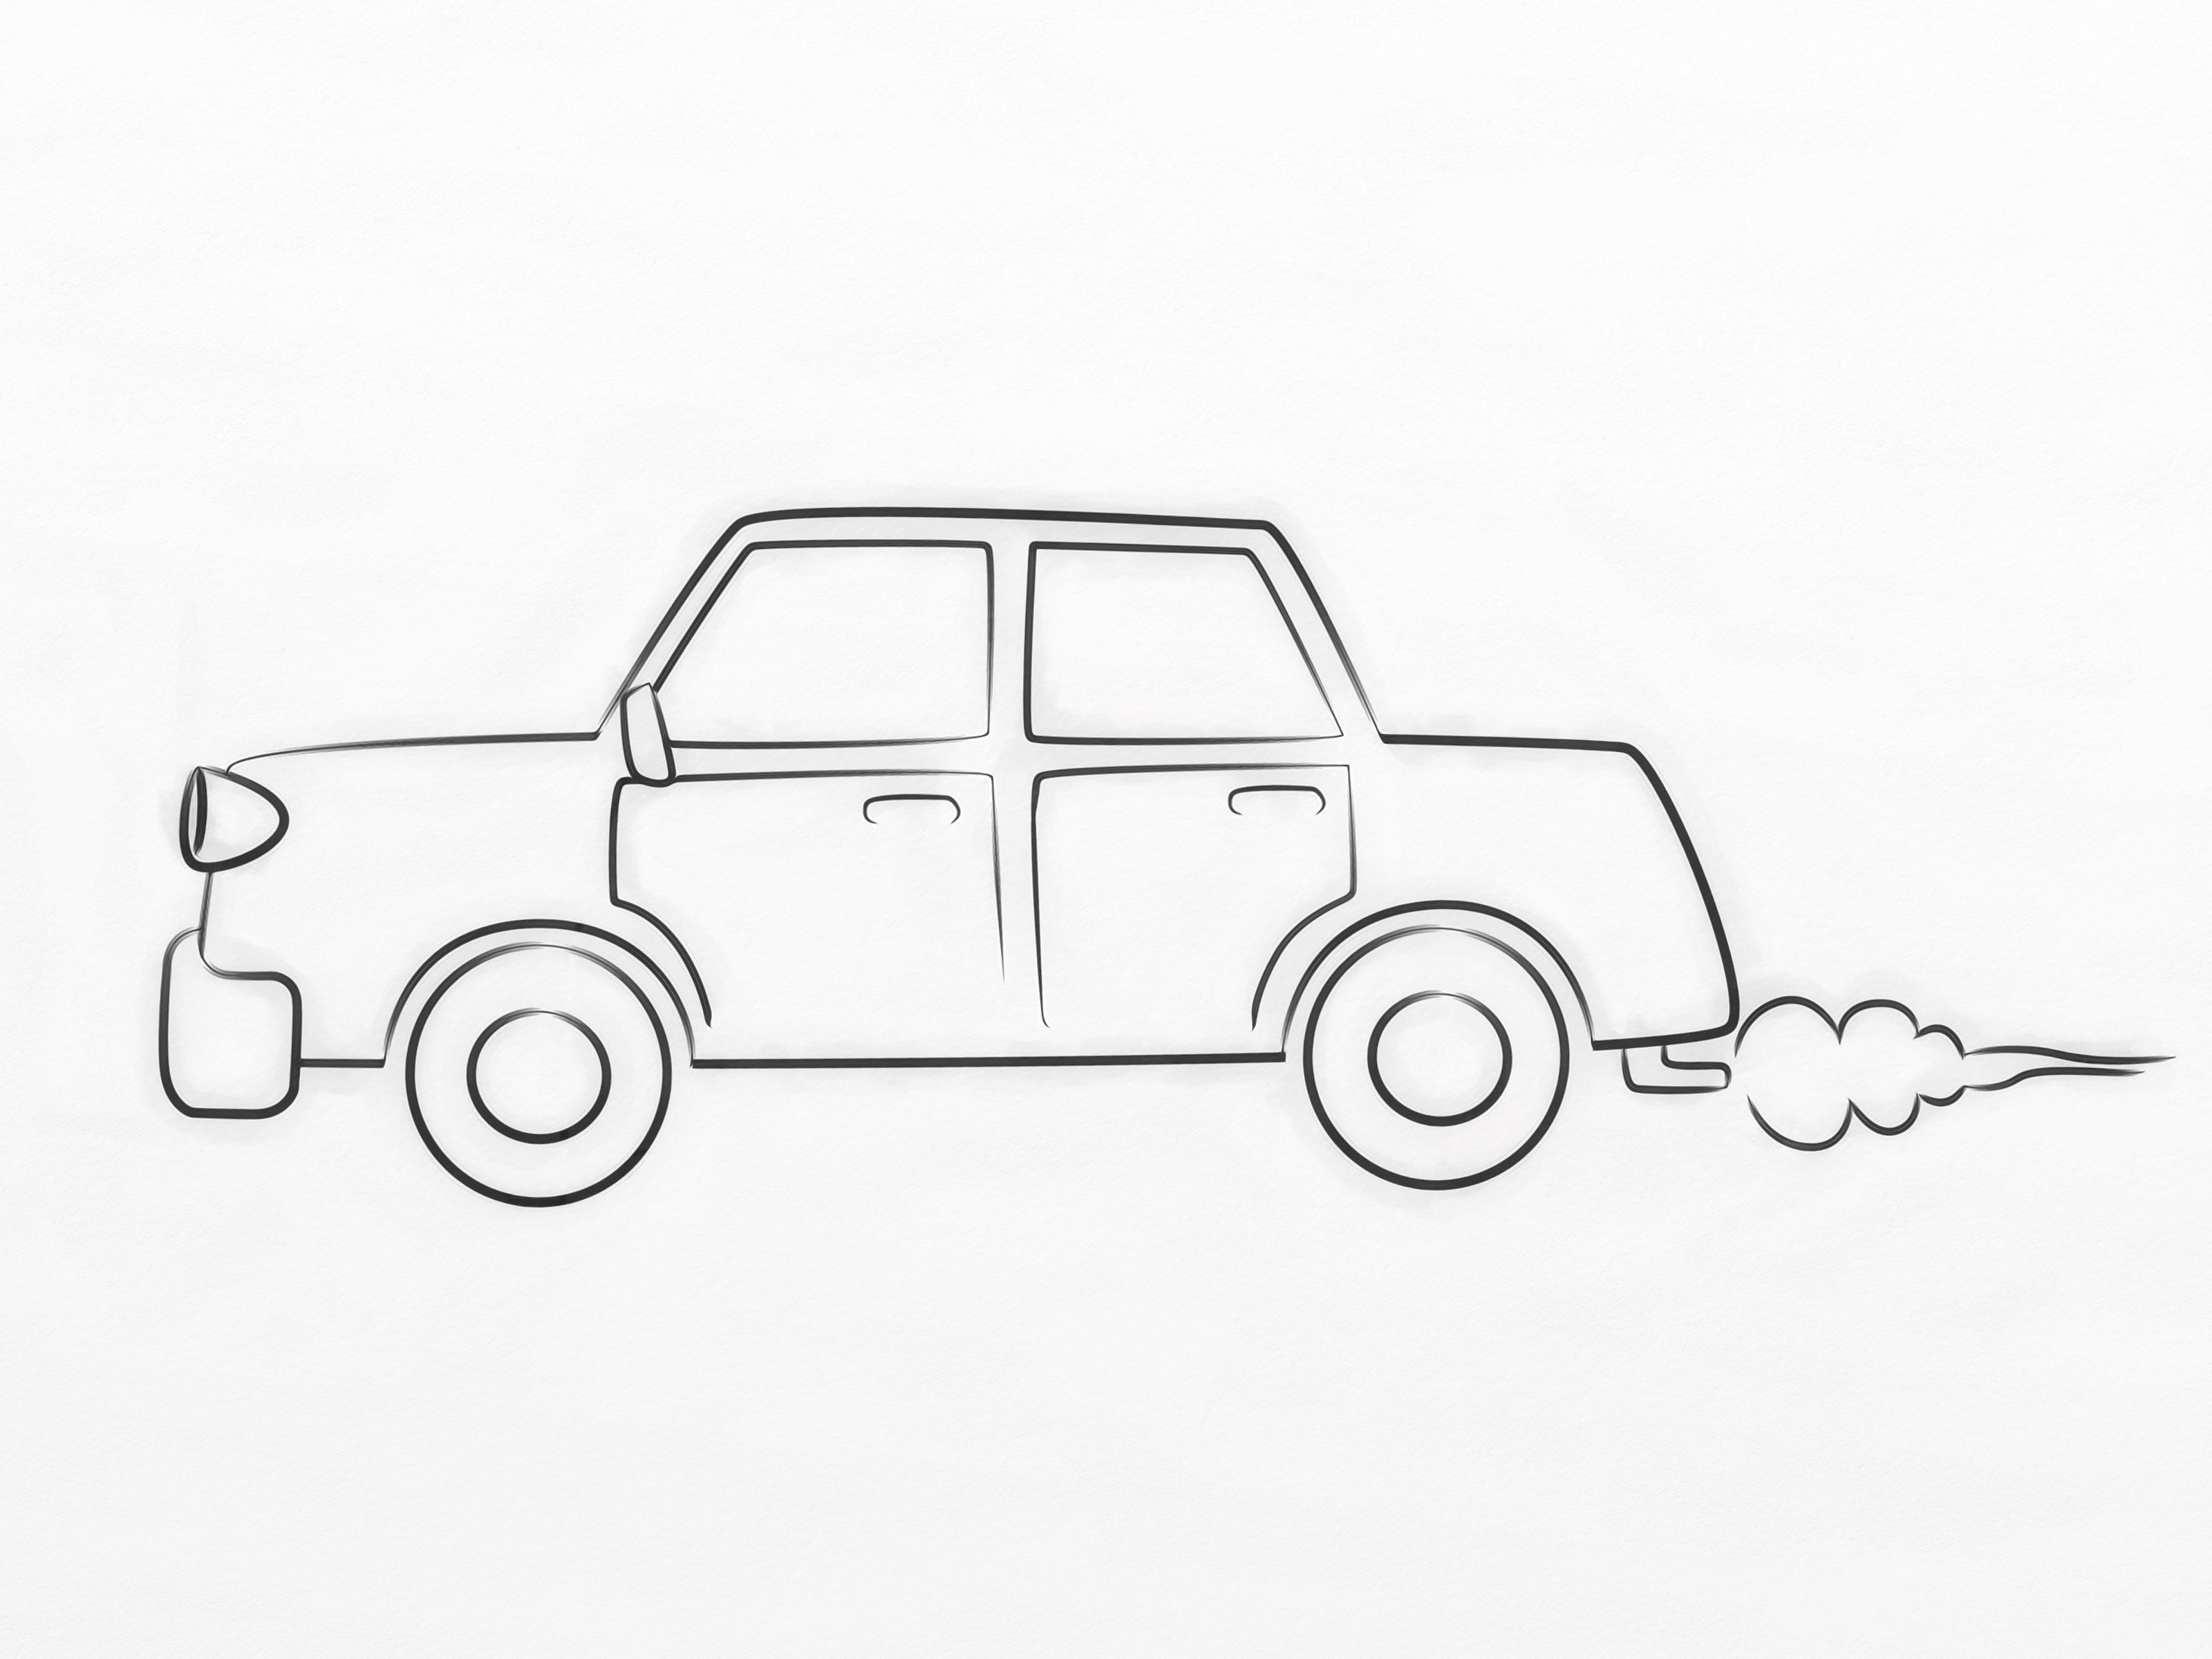 How to Draw a Cartoon Car: 8 Steps (with Pictures ...